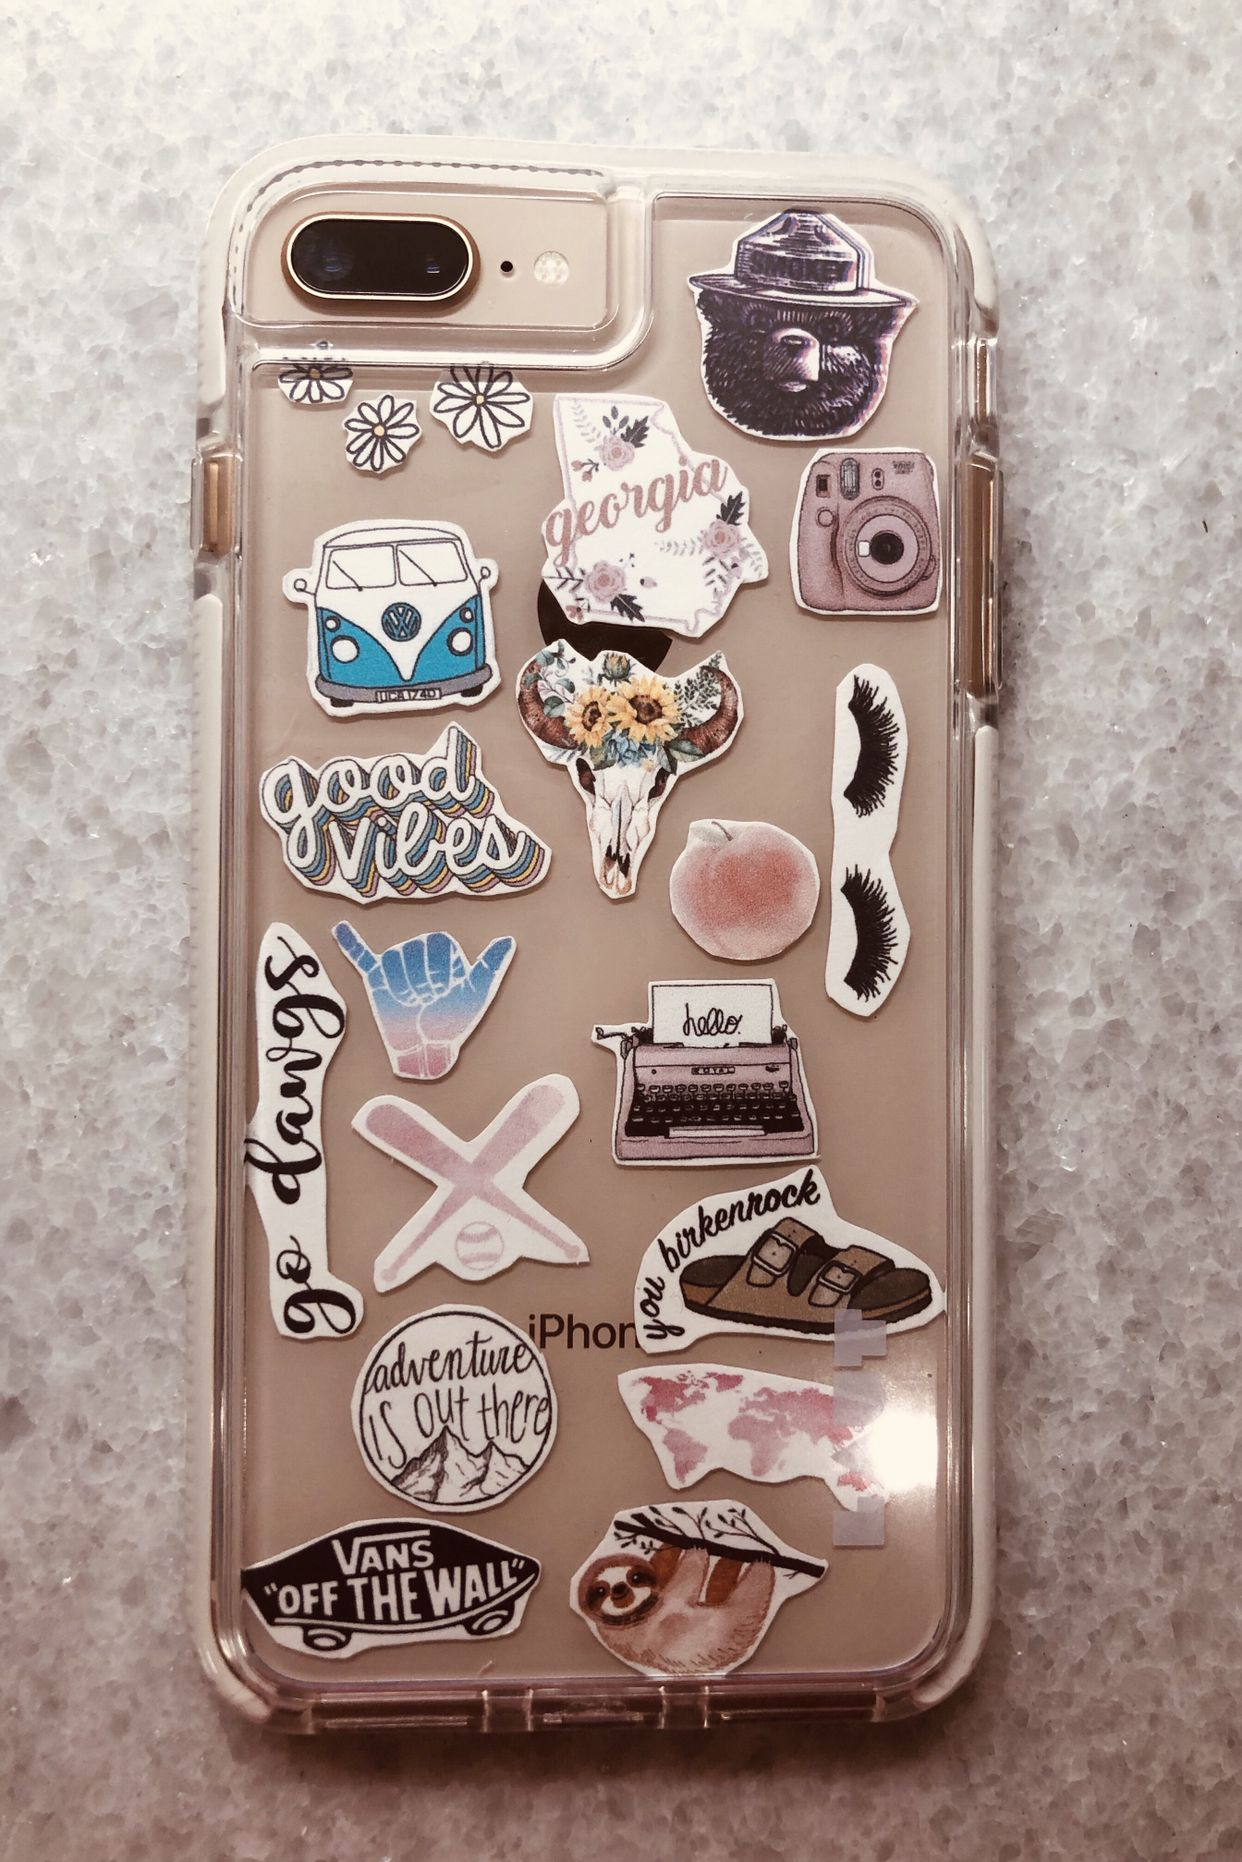 finest selection cbcb0 e10de I got a clear Laut phone case from target. I printed stickers out ...